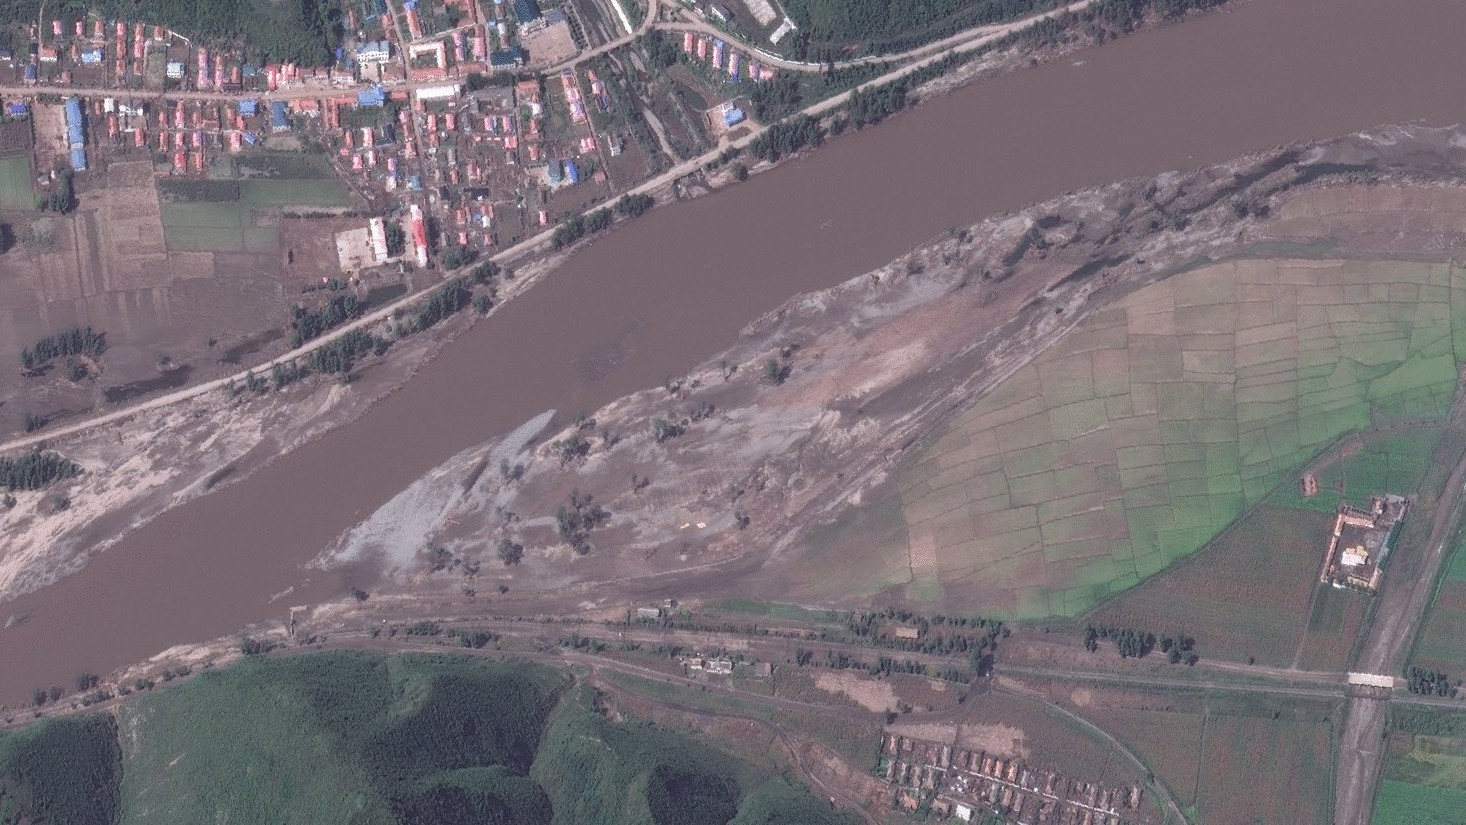 Exclusive photos show the extent of flood devastation in North Korea